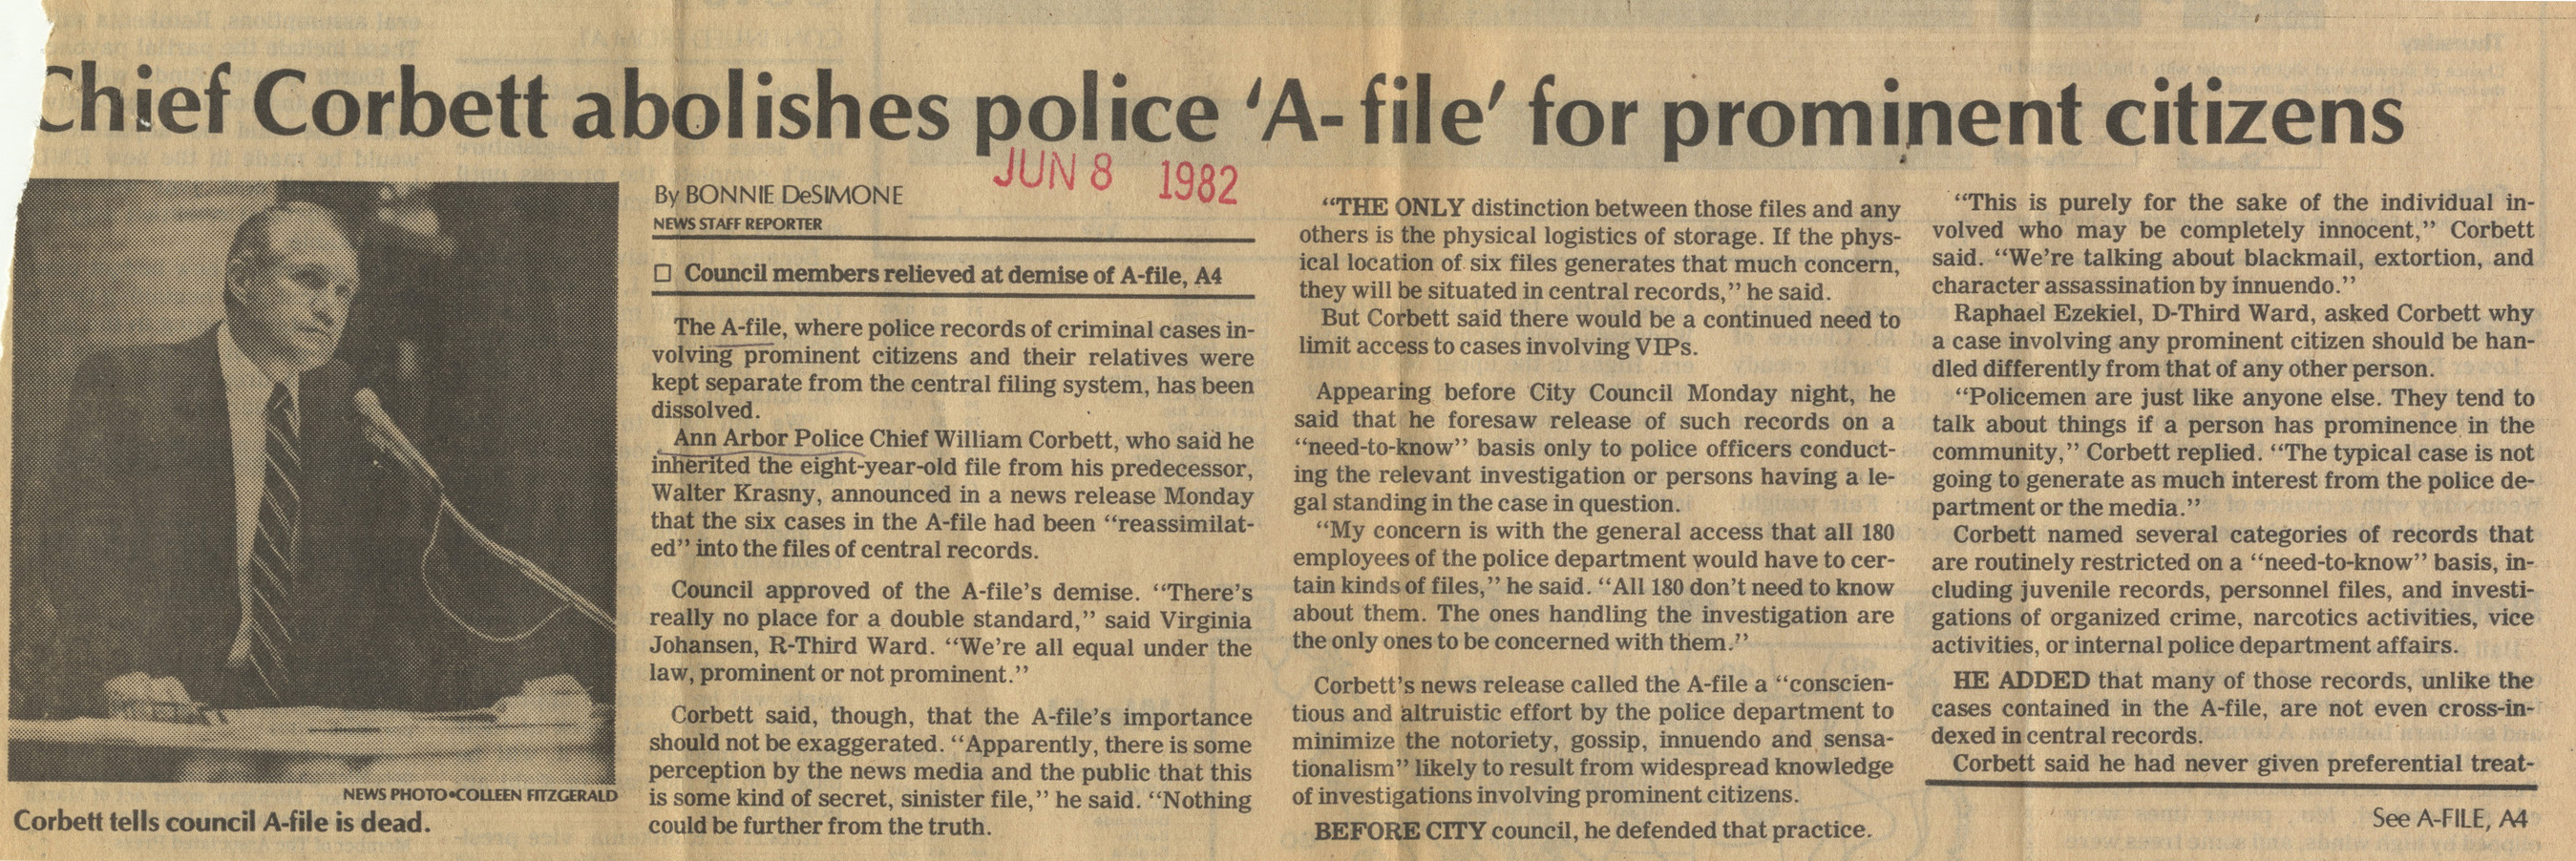 Chief Corbett Abolishes Police 'A-File' For Prominent Citizens image